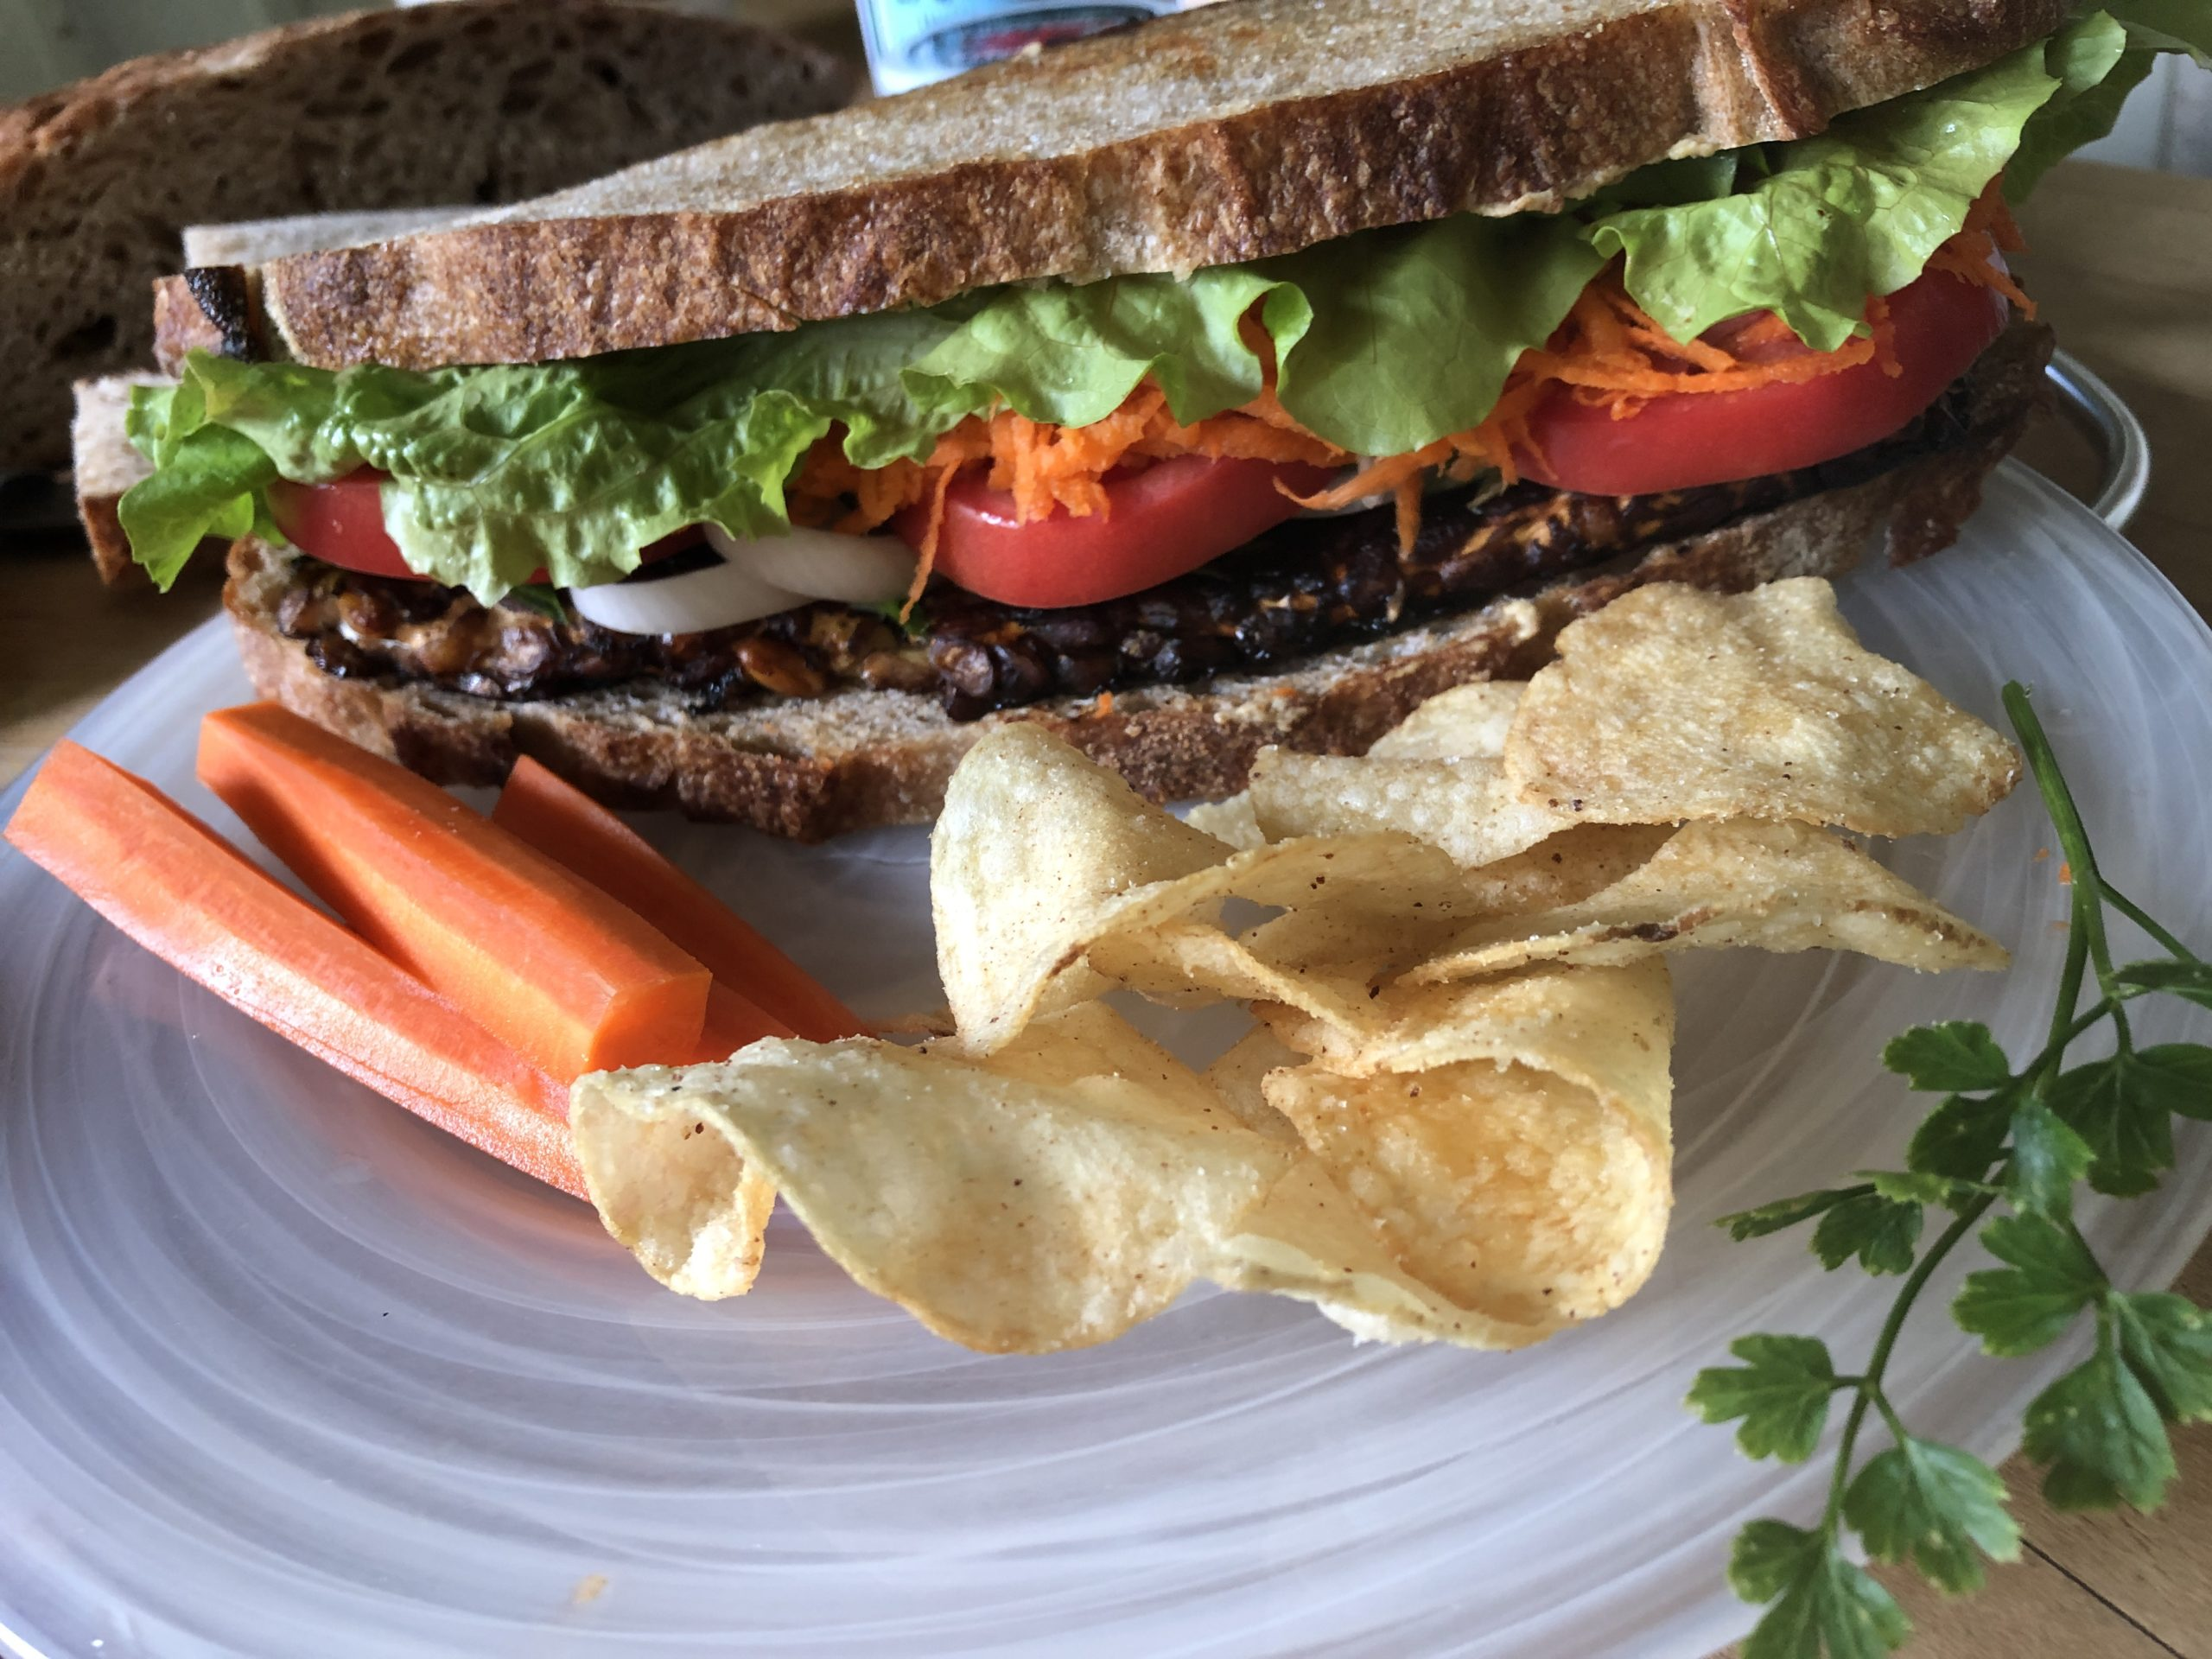 Chef Tom's Sweet & Sour Tempeh Summer Sandwich